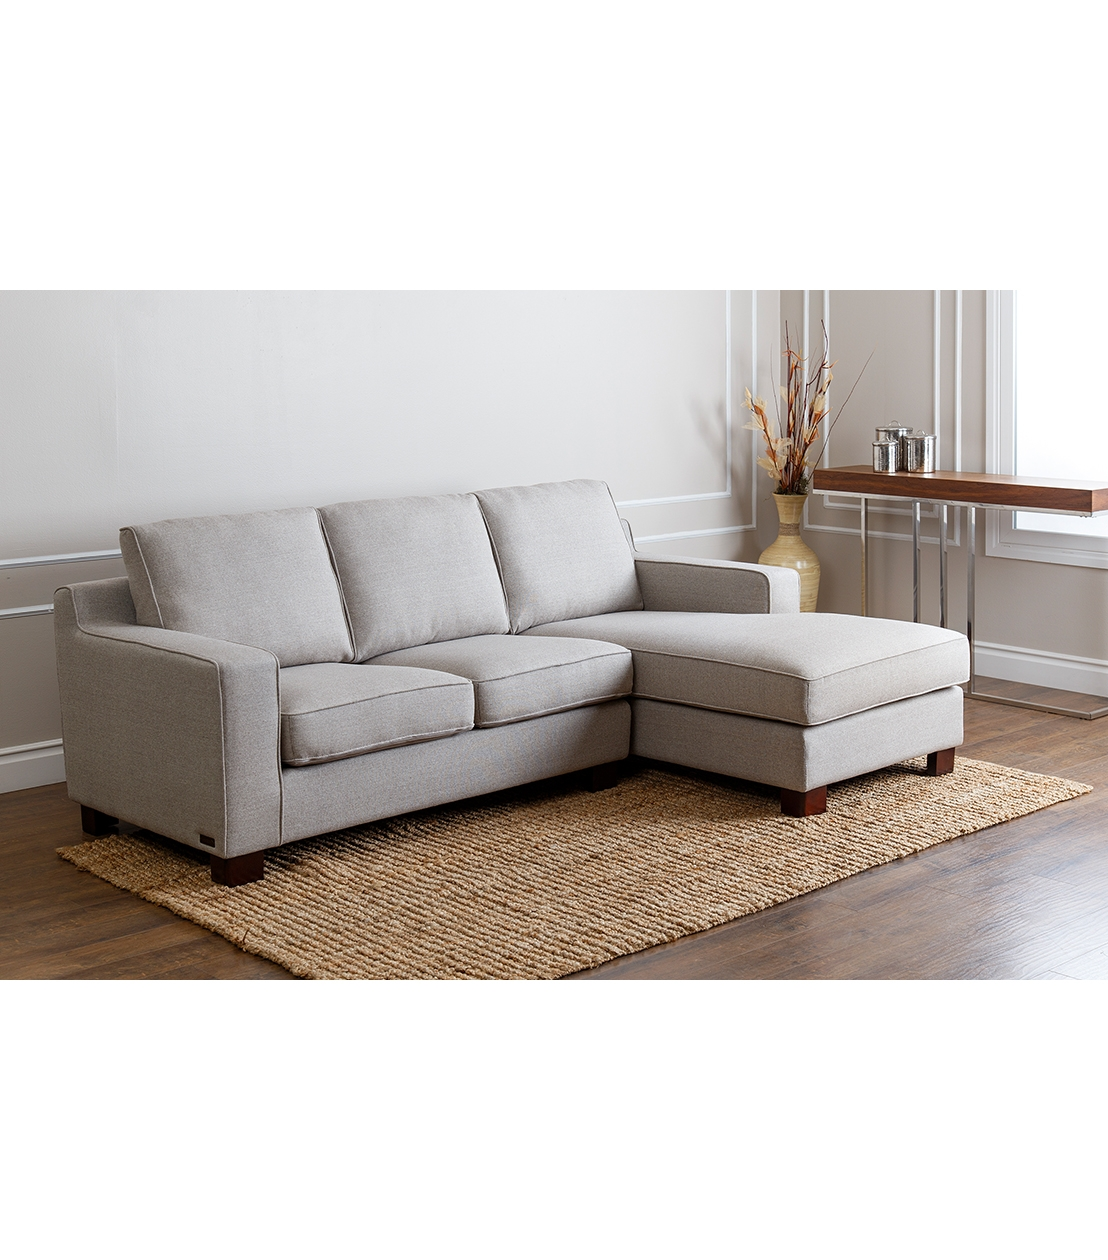 Sectionals With Abbyson Sectional Sofa (Image 15 of 15)